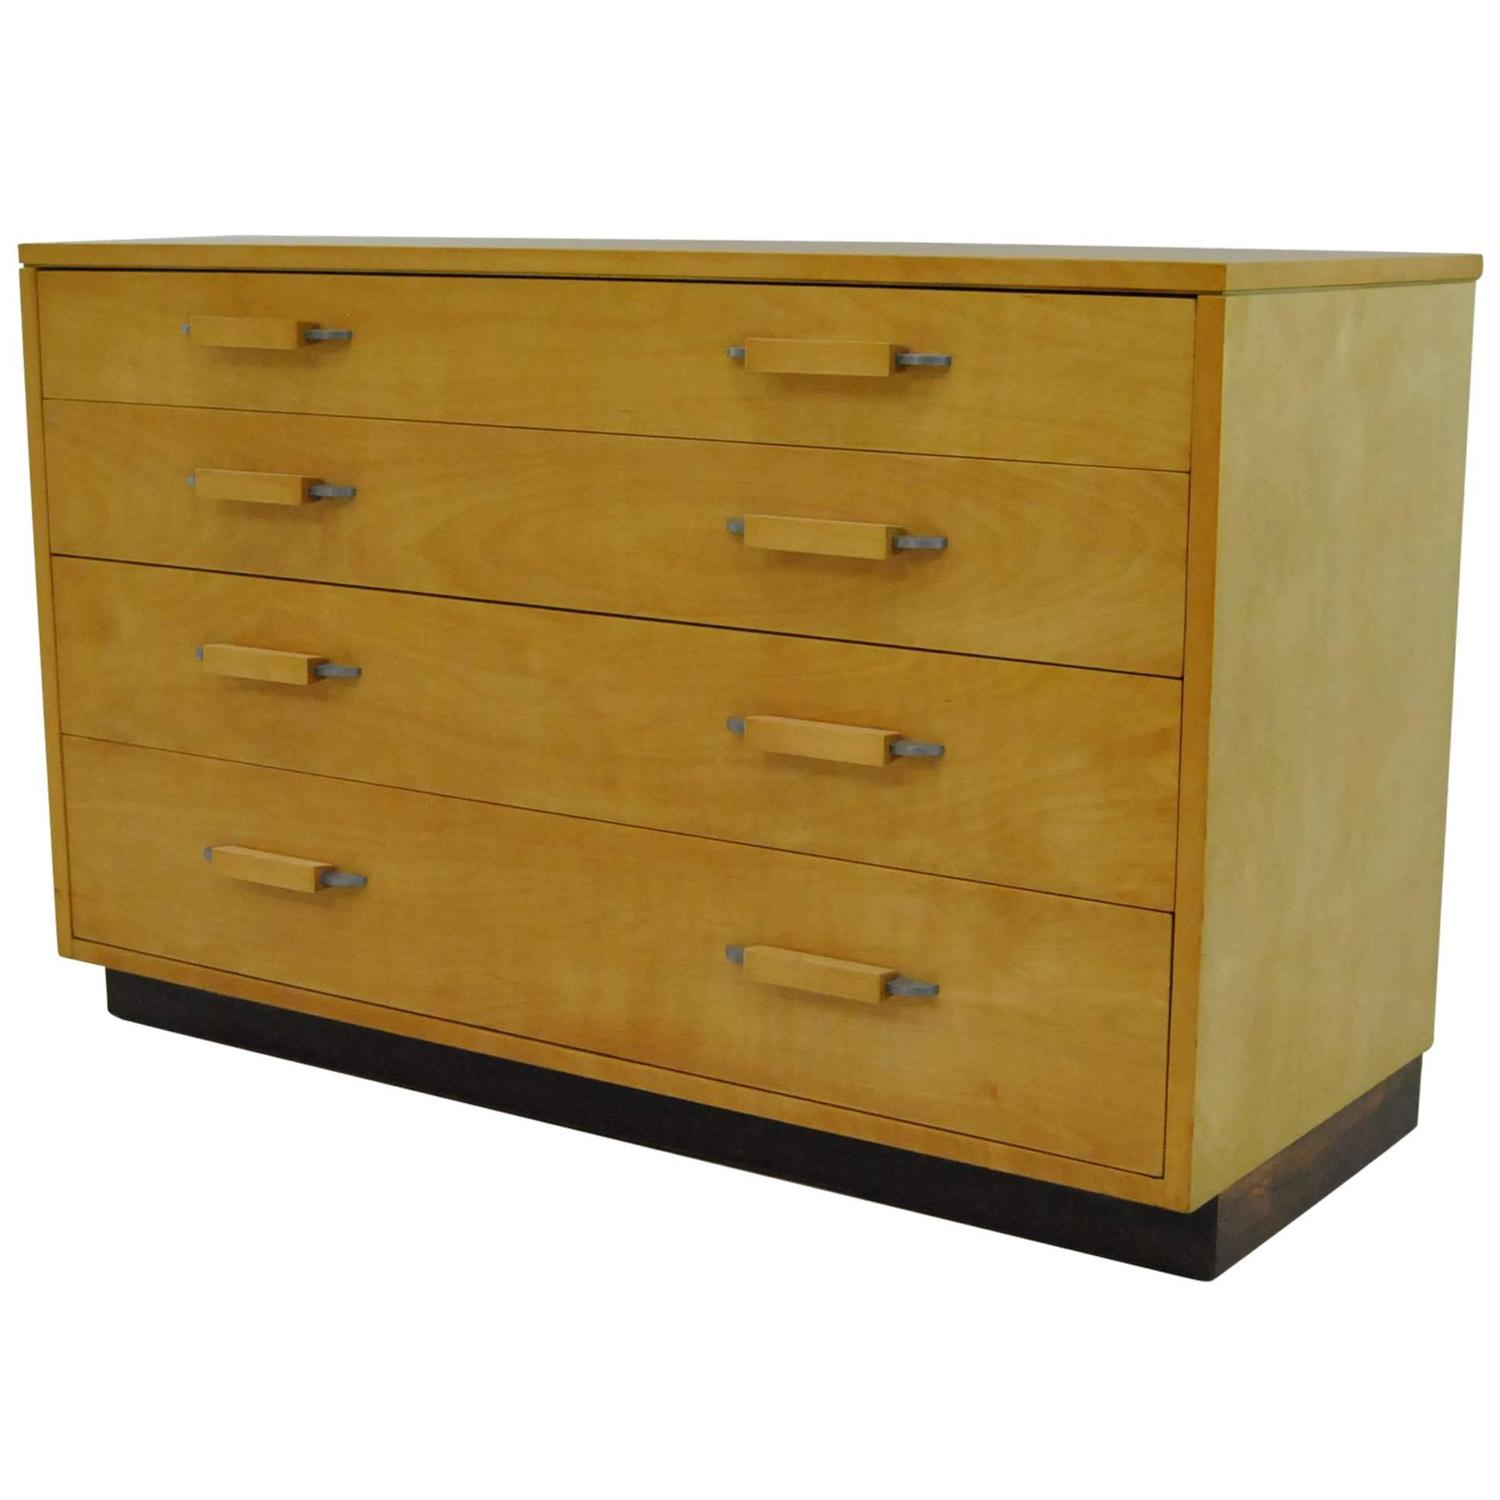 Mid Century Four Drawer Birch Chest By Johnson Furniture Co., Eilel Saarinen